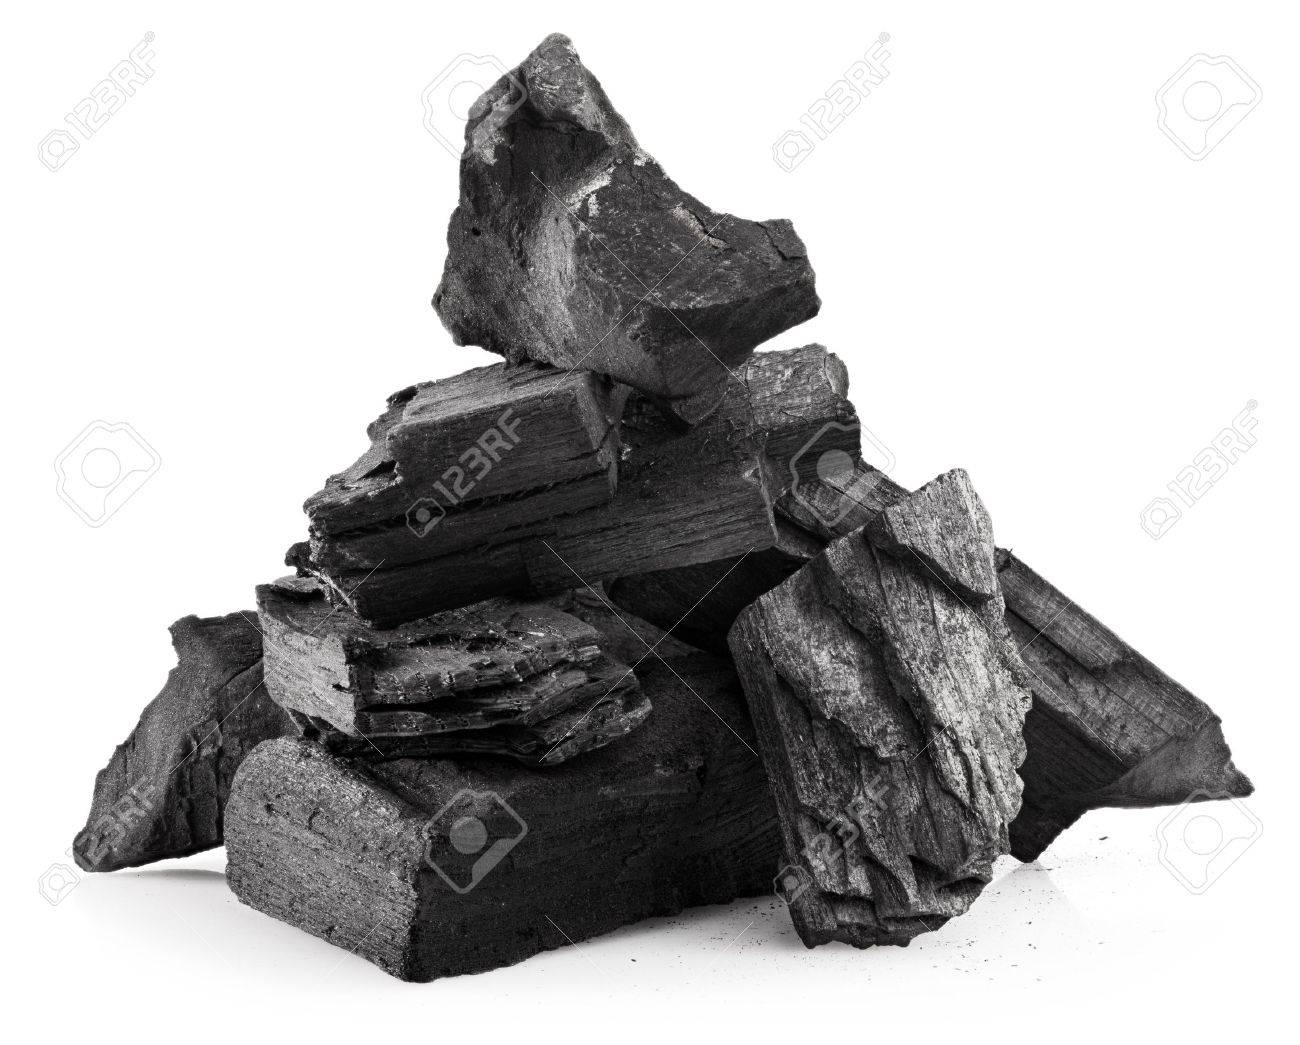 Piece of fractured wood coal isolated over white background - 29702743